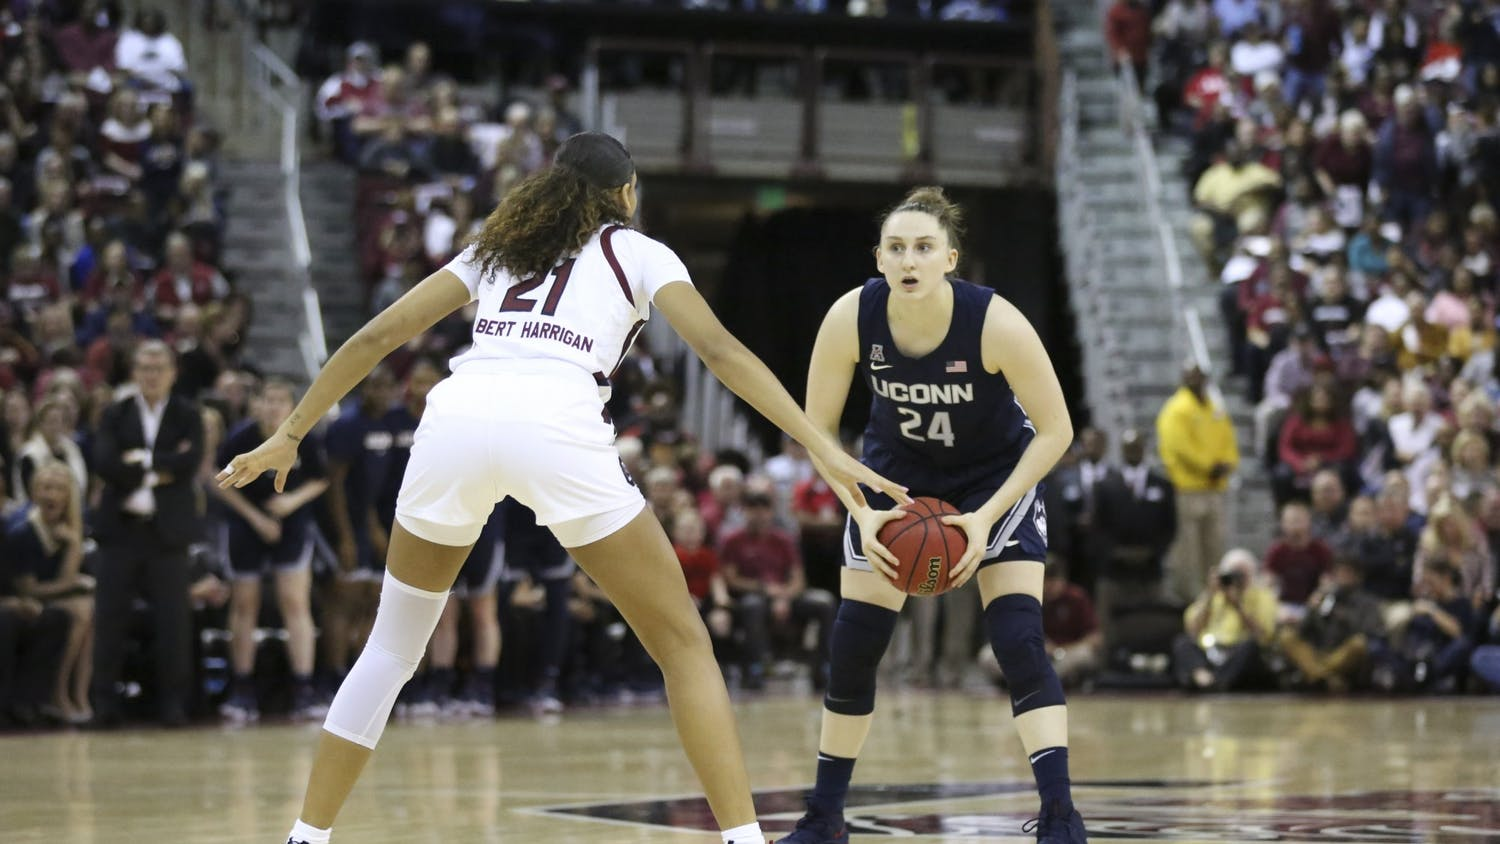 Senior forward Mikiah Herbert Harrigan stands at defense against UConn. This was South Carolina's first victory over UConn in school history.